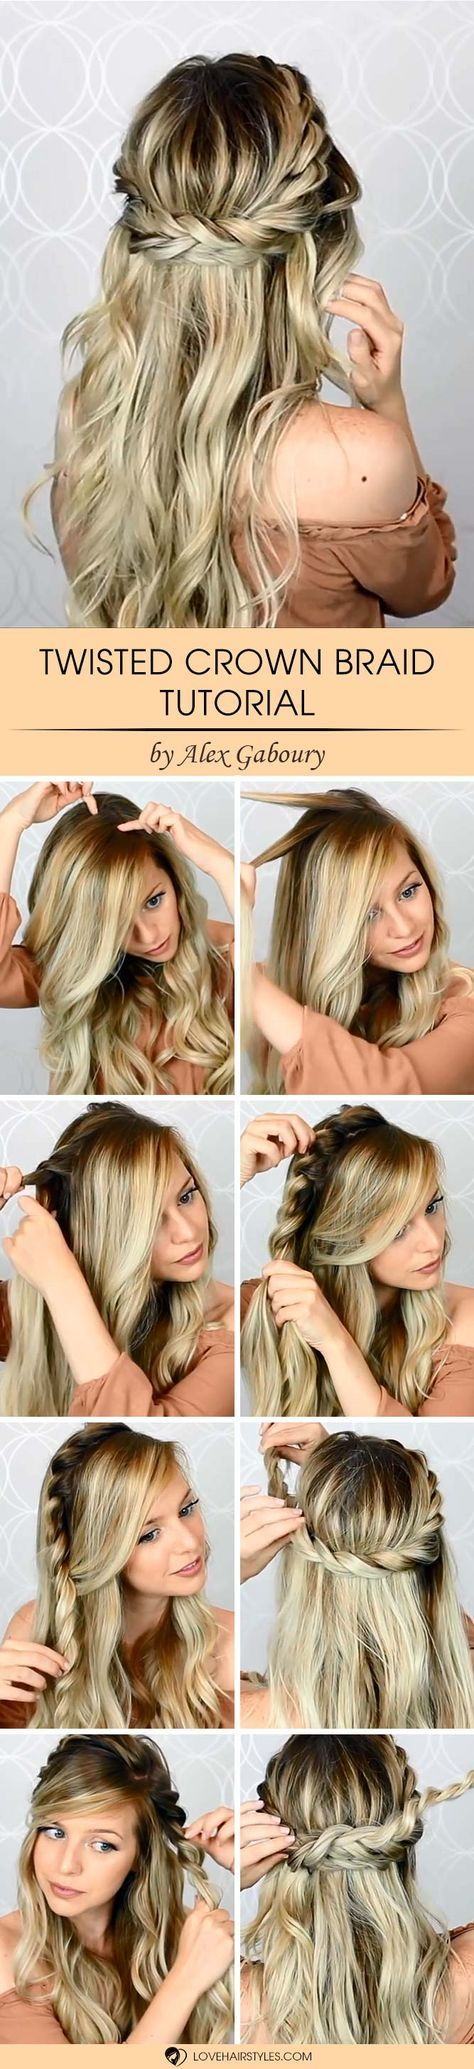 This twisted crown braid tutorial allows you to master a lovely look in just several minutes. Even an amateur can repeat these steps.